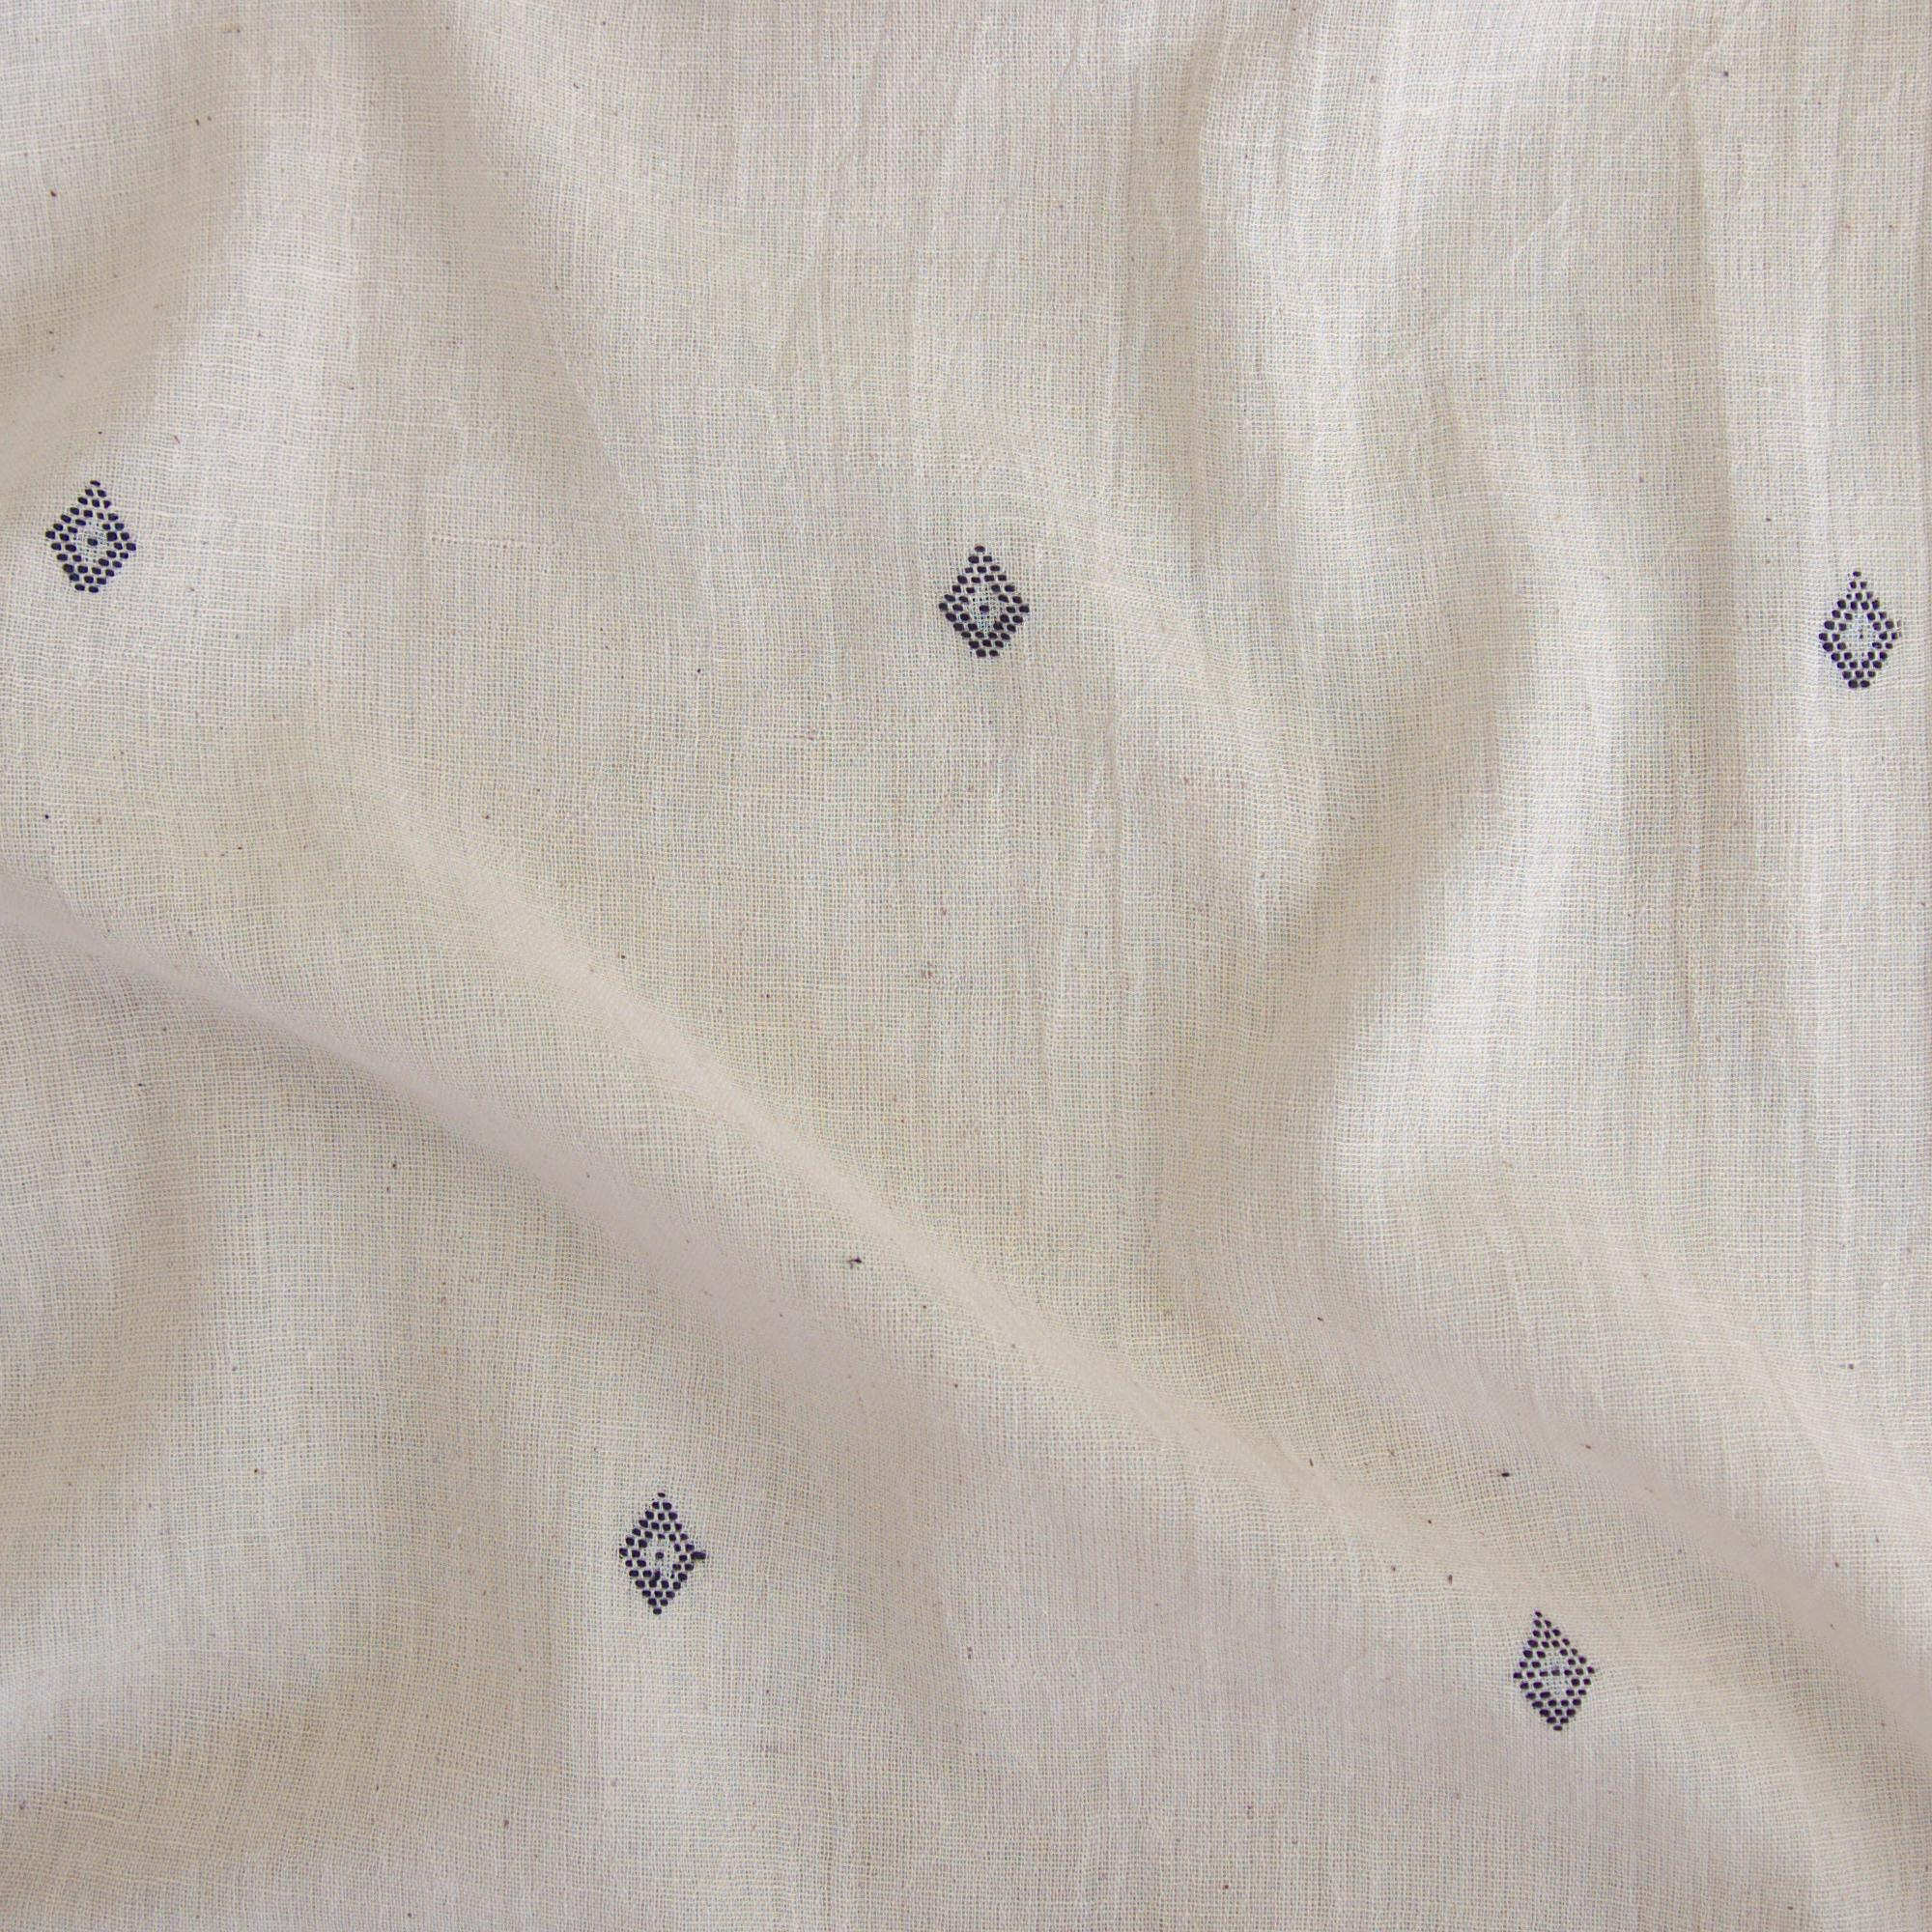 Handloom-Woven Organic Kala Cotton Fabric from India - Plain 1 by 1 Weave With Extra Weft - Diamond Design - Contrast